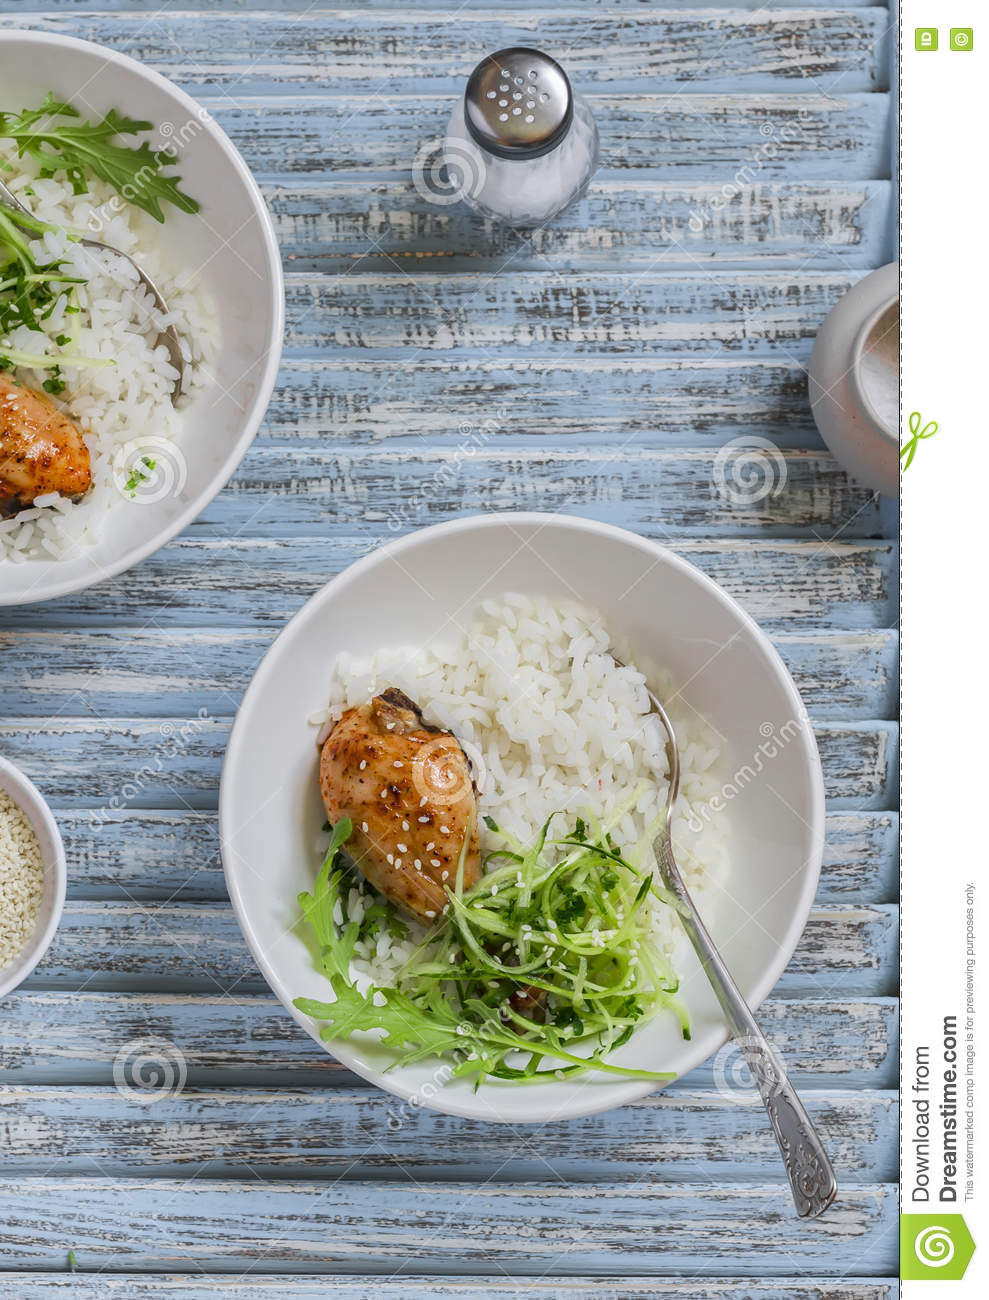 Rice, chicken and salad in a bowl